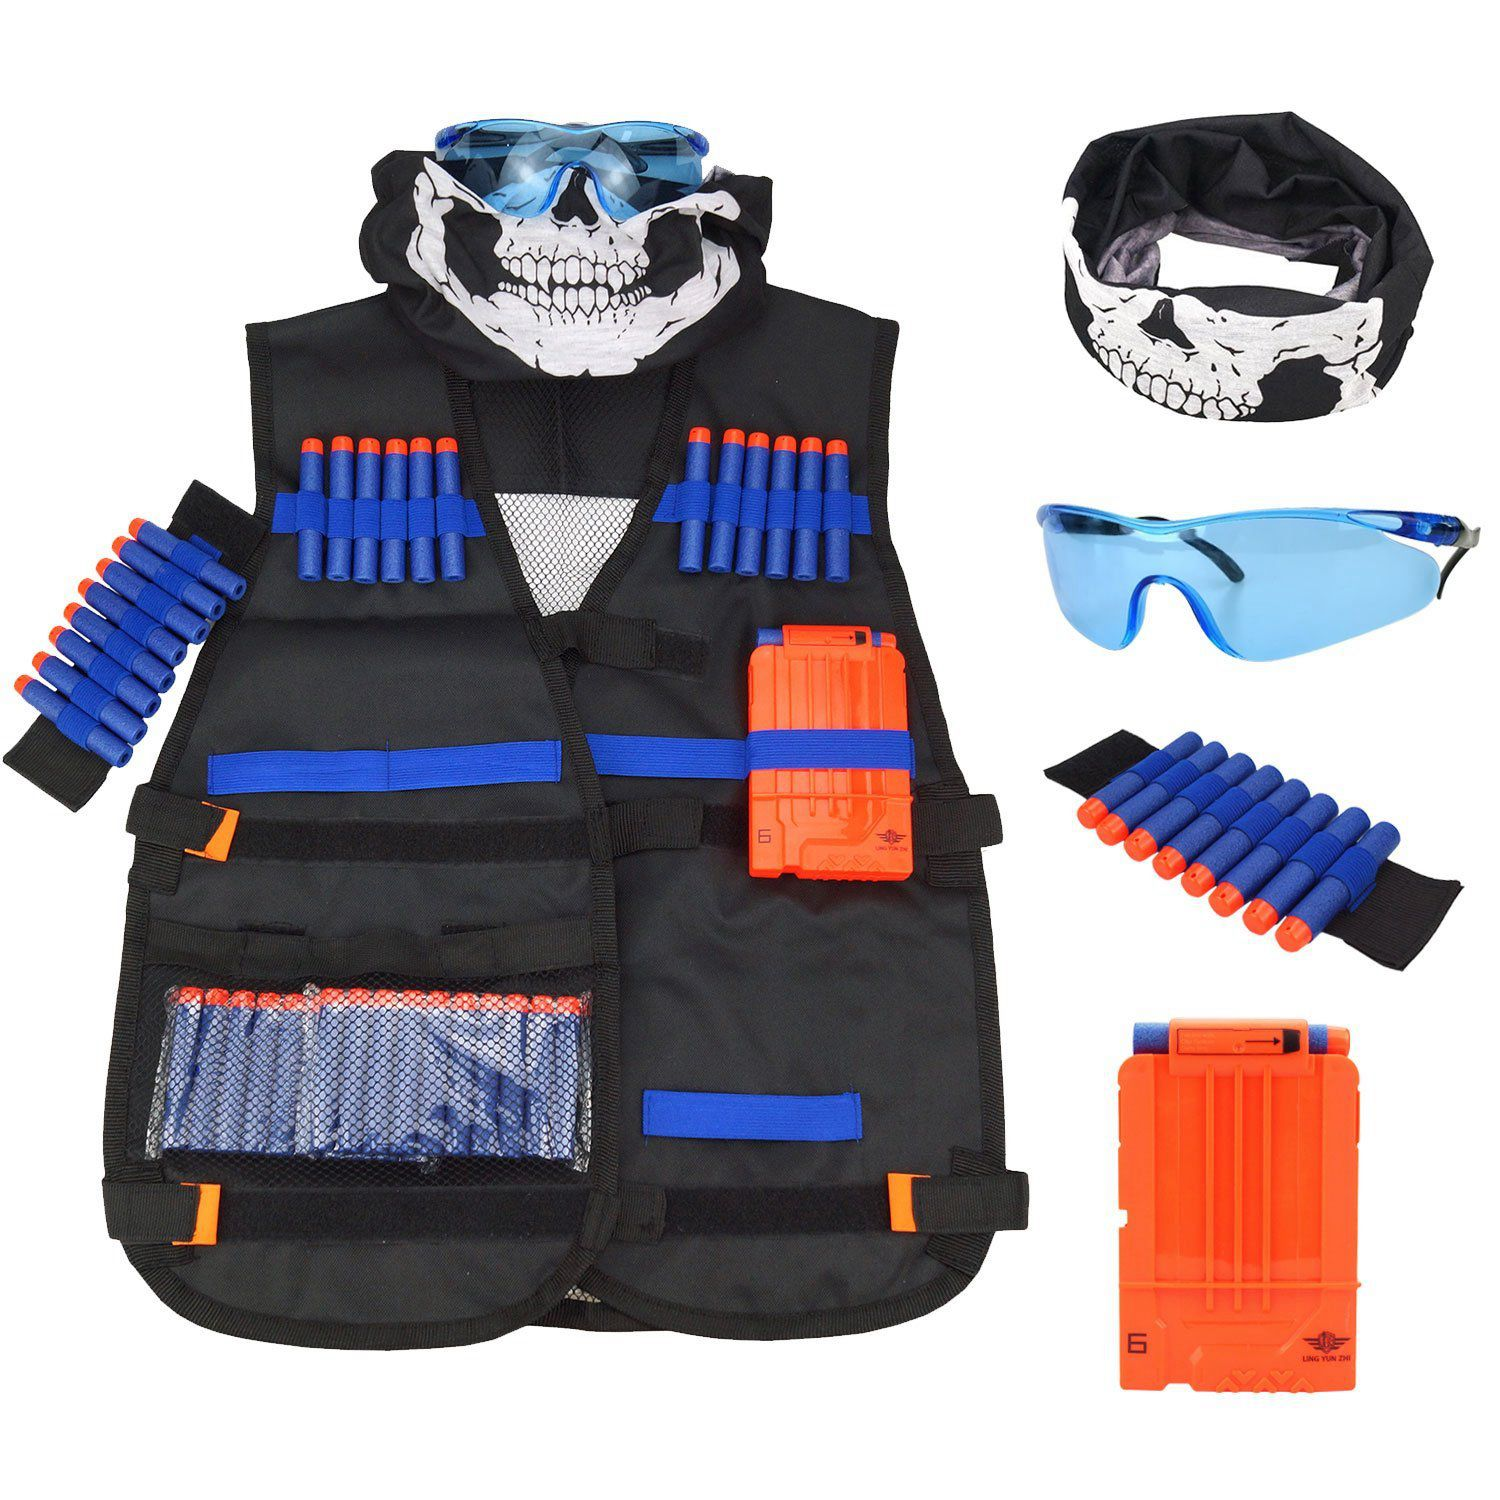 ChildrenBlack Tactical Gun Accessories  Waistcoat Ammo Holder Elite Pistol Bullets Toy Clip Darts For Nerf With Mask Goggles